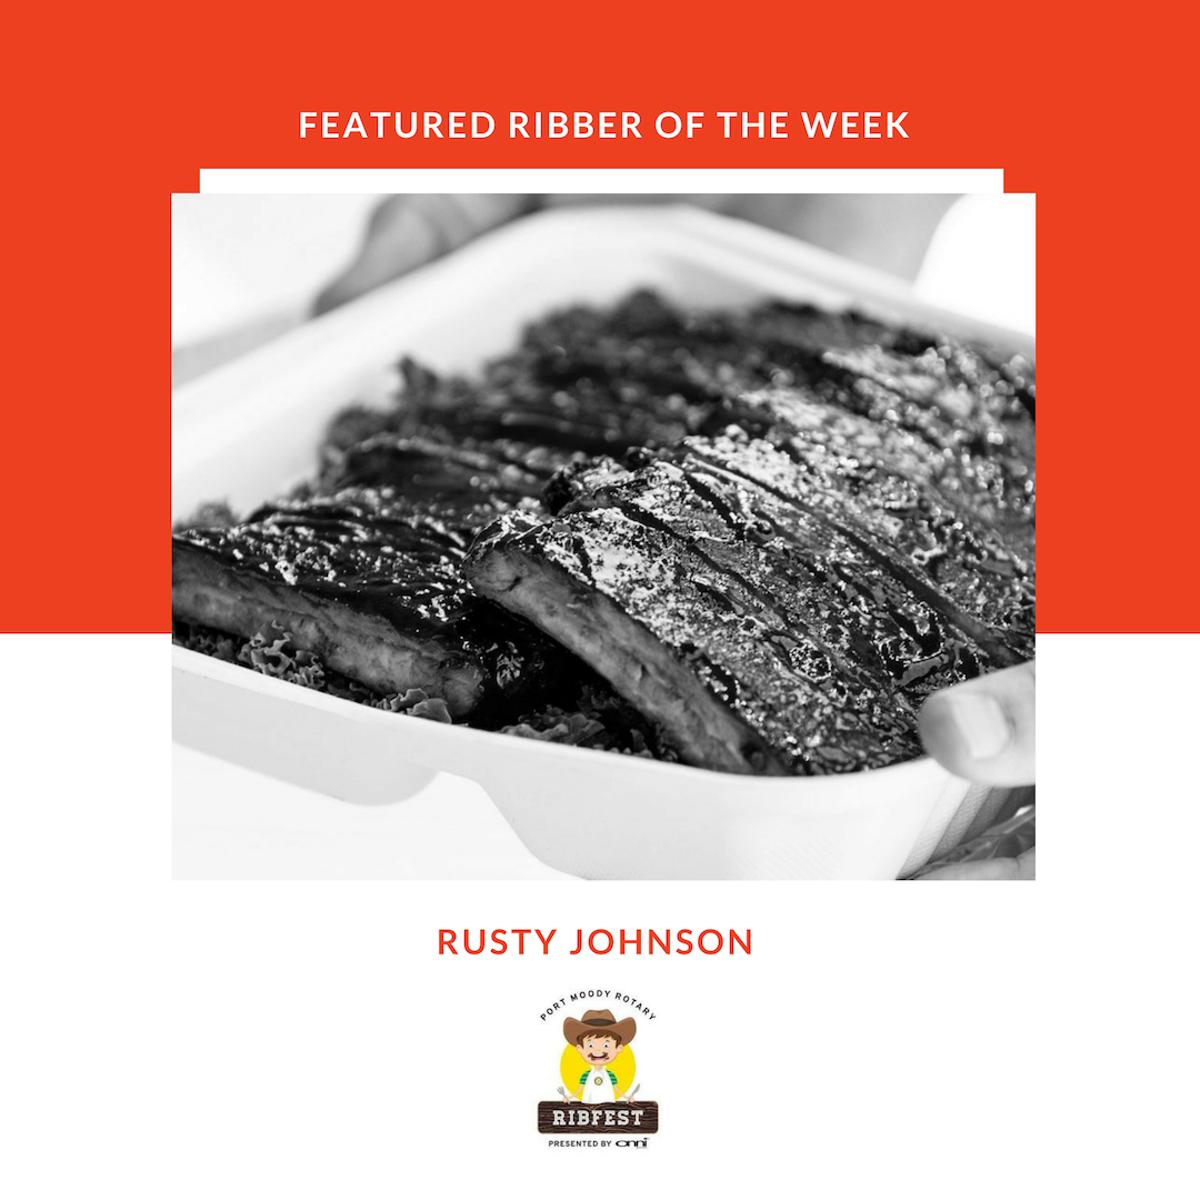 This week's Ribber of the week is Rusty Johnson! Available in the adult-bar section, local award winning BBQ Champion Rusty Johnson, will be serving up ribs. Make sure to check out Rusty Johnson at this year's Port Moody Rib Fest! #ribfest #portmoodyribfest #portmoody